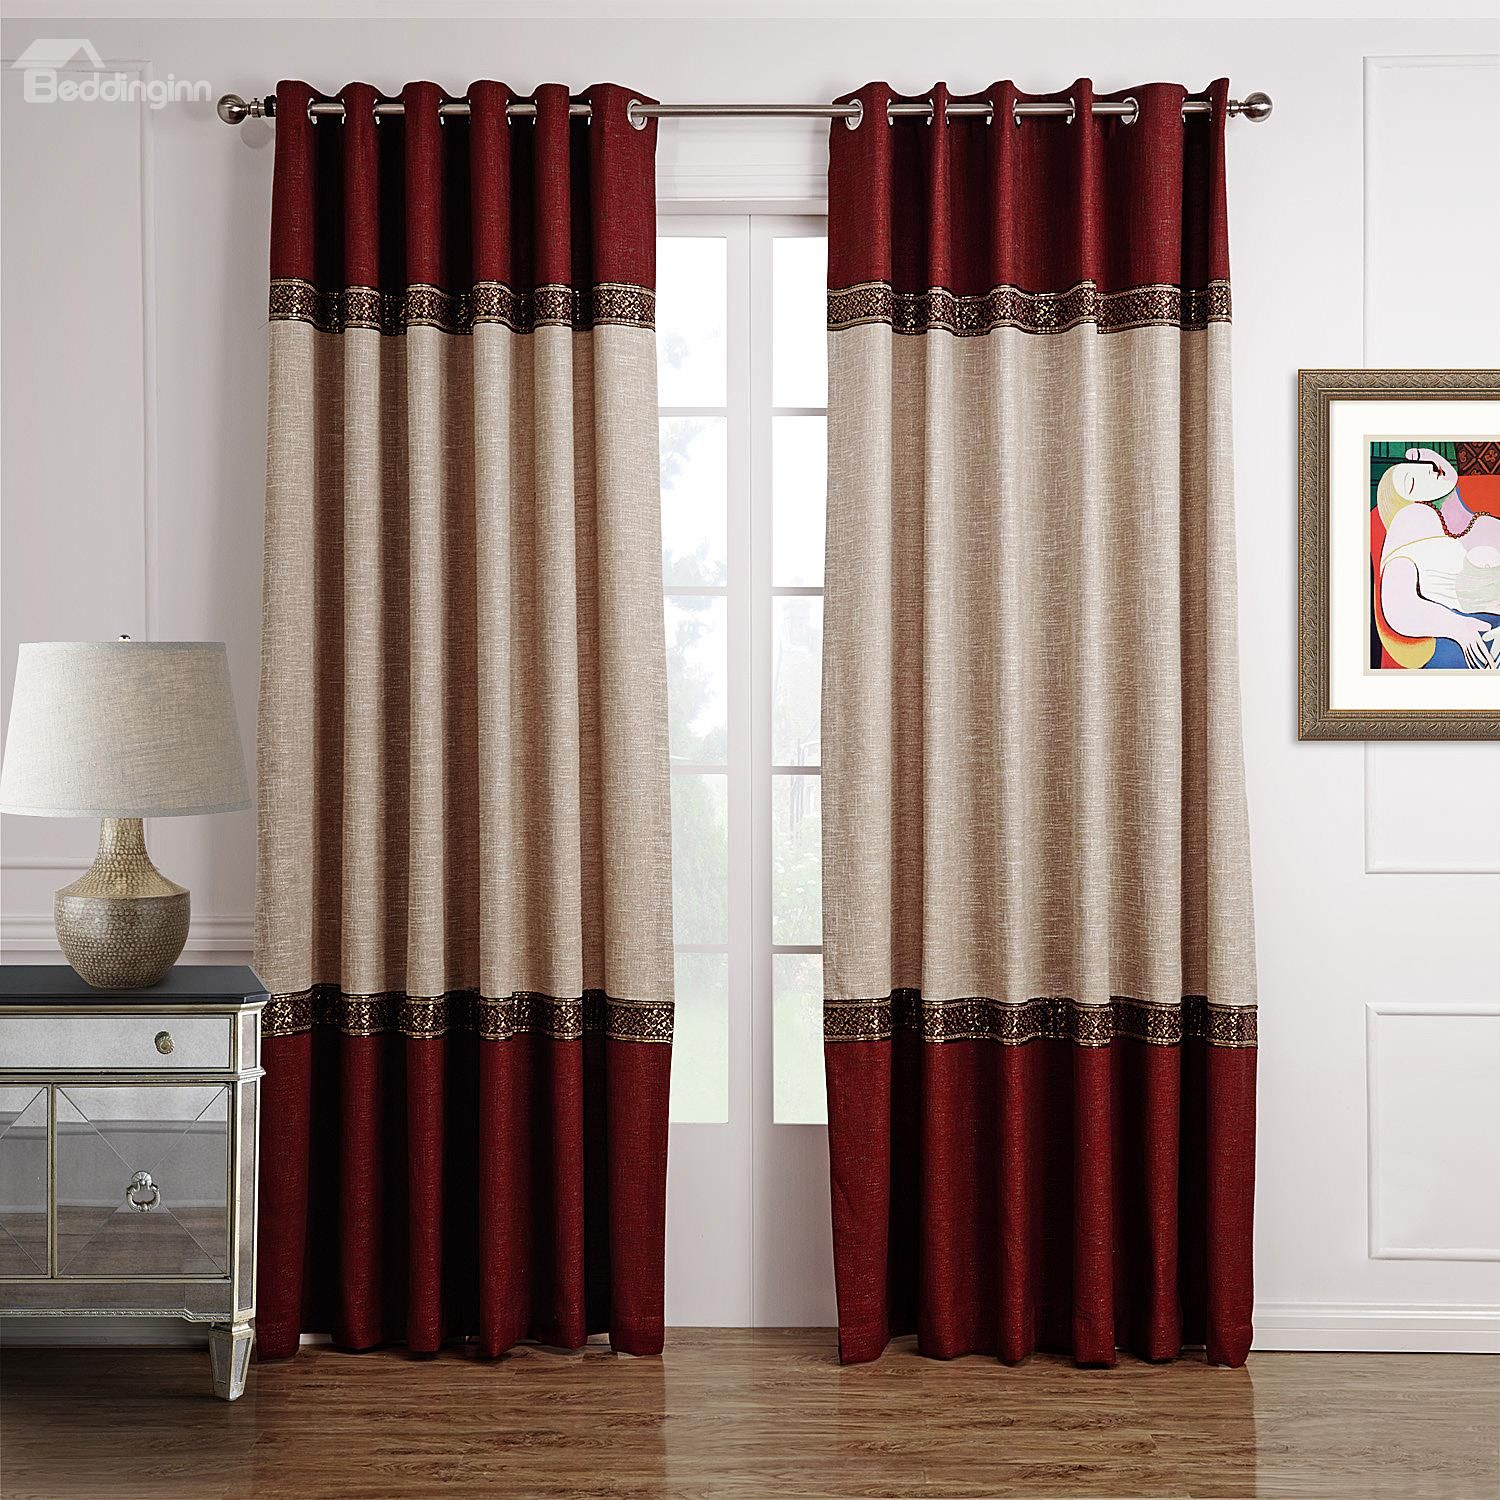 Hot Selling Fantastic Joint Color Decorative Border Design Custom Curtain Curtains Pinterest